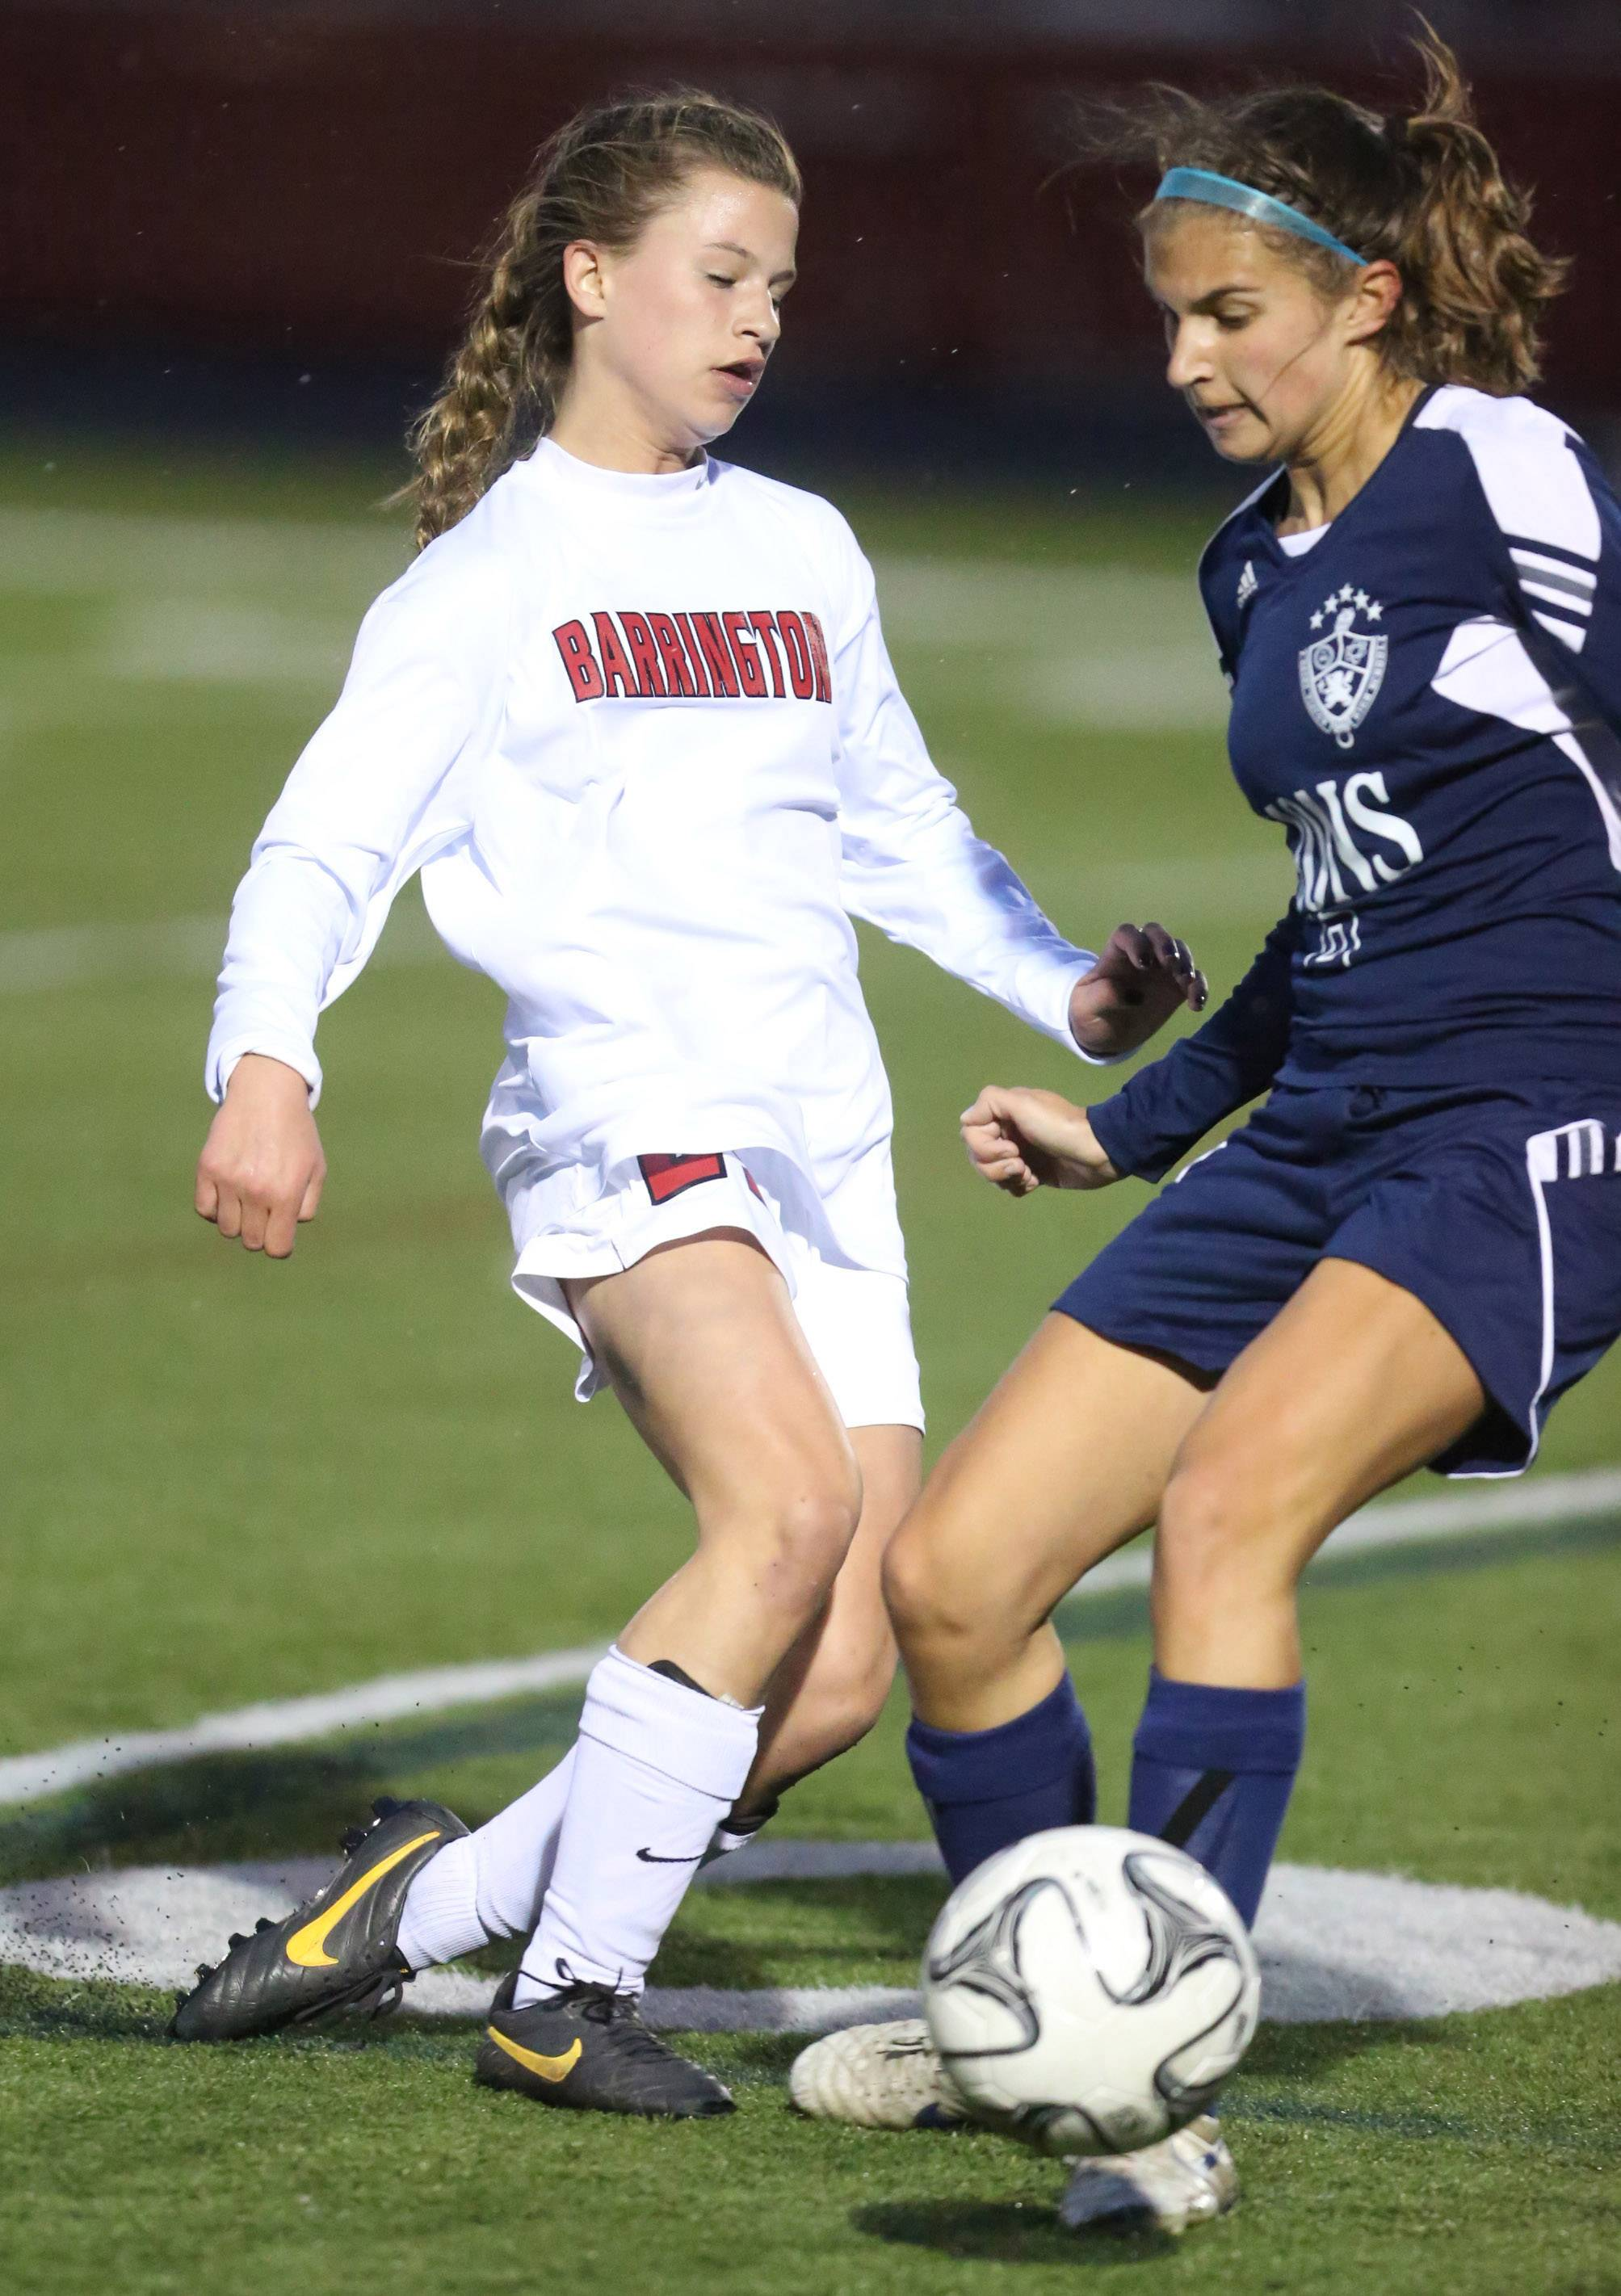 St. Viator's Emma Henry, right, looks to dibble past Barrington's Kayla Schutter on Thursday.